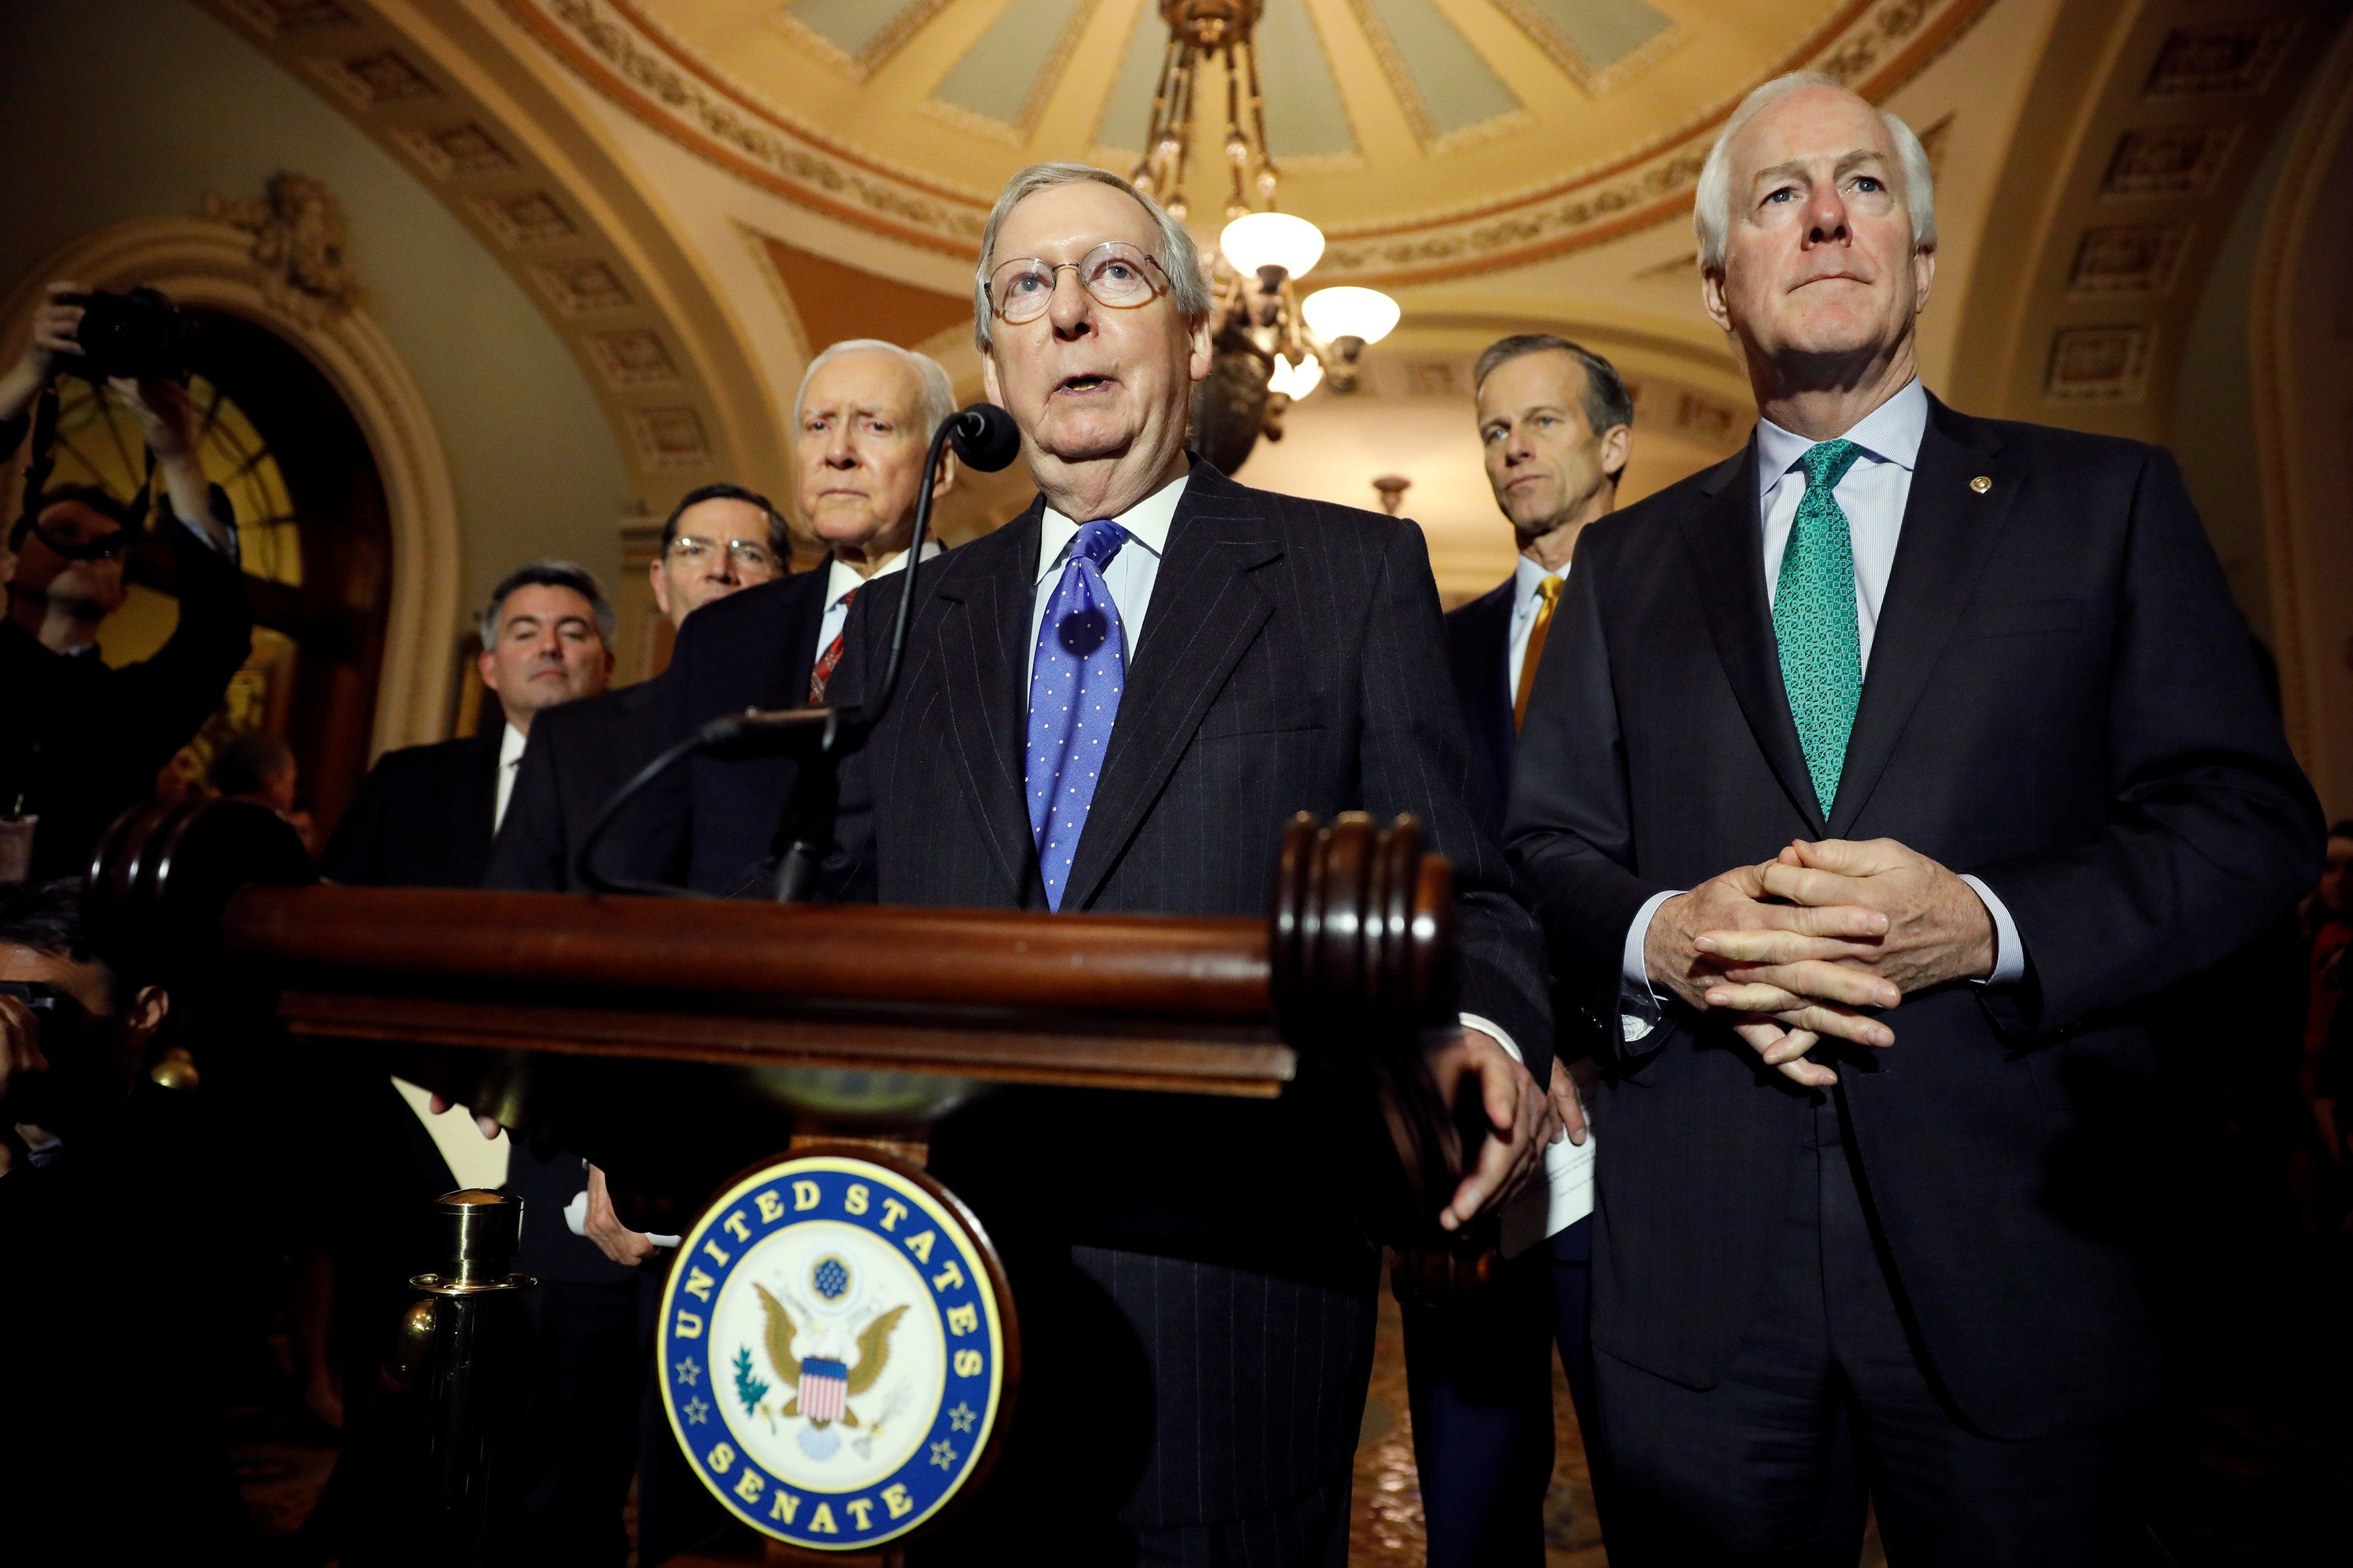 Senate Majority Leader Mitch McConnell, accompanied by, from left to right, Sen. Cory Gardner (R-CO), Sen. John Barrasso (R-WY), Sen. Orrin Hatch (R-UT), Sen. John Thune (R-SD), and Sen. John Cornyn (R-TX), speaks about the Tax Cuts and Jobs Acts at news conference following the weekly policy luncheons at the U.S. Capitol in Washington, U.S., December 19, 2017. REUTERS/Aaron P. Bernstein